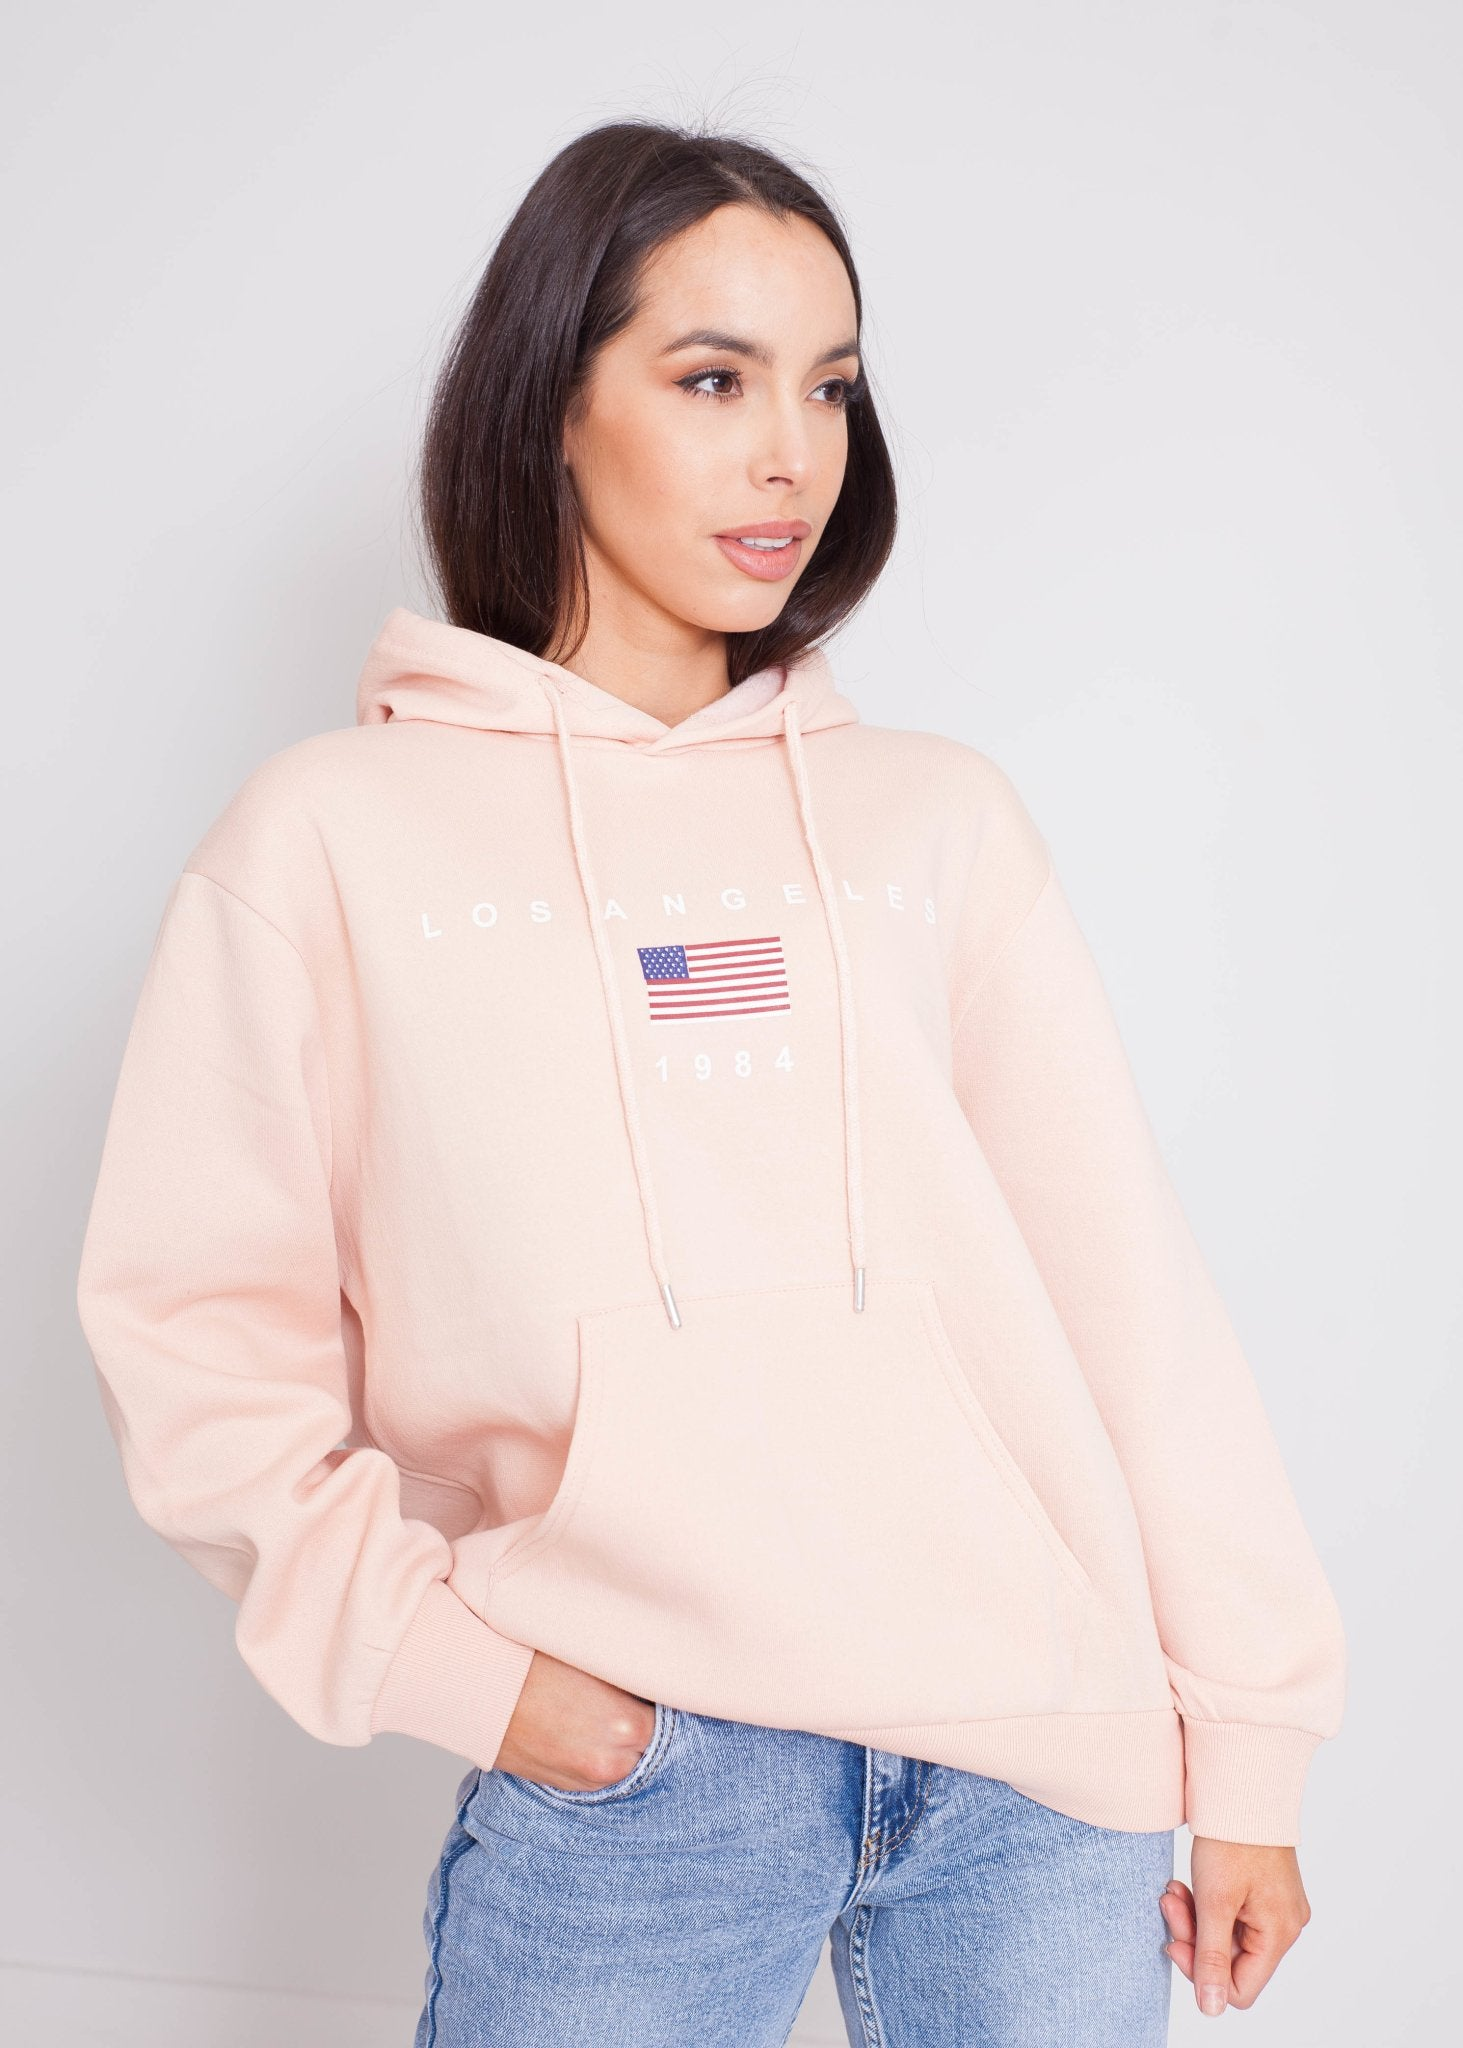 Jade Printed Hoodie In Blush - The Walk in Wardrobe